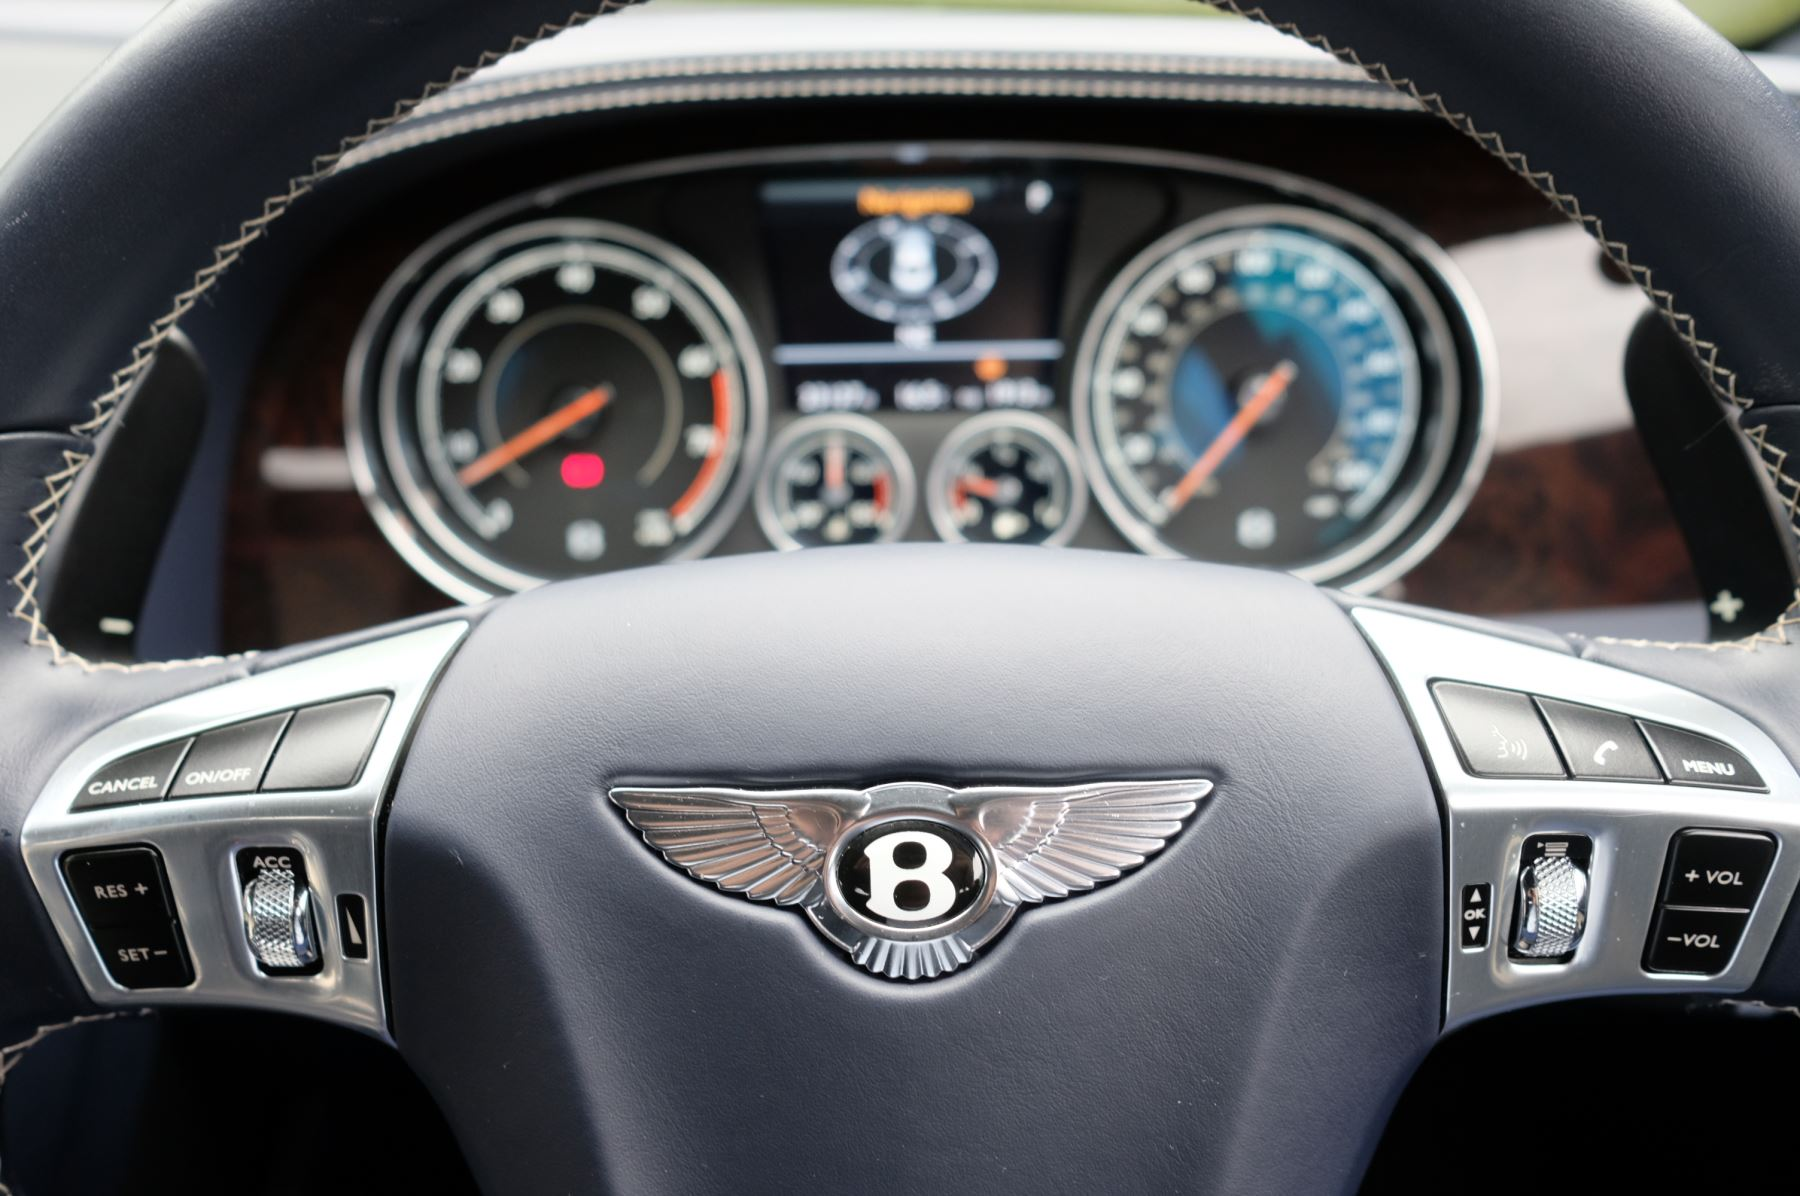 Bentley Continental GT 6.0 W12 [635] Speed - 21 inch Directional Sports Alloys - Ventilated Front Seats with Massage image 21